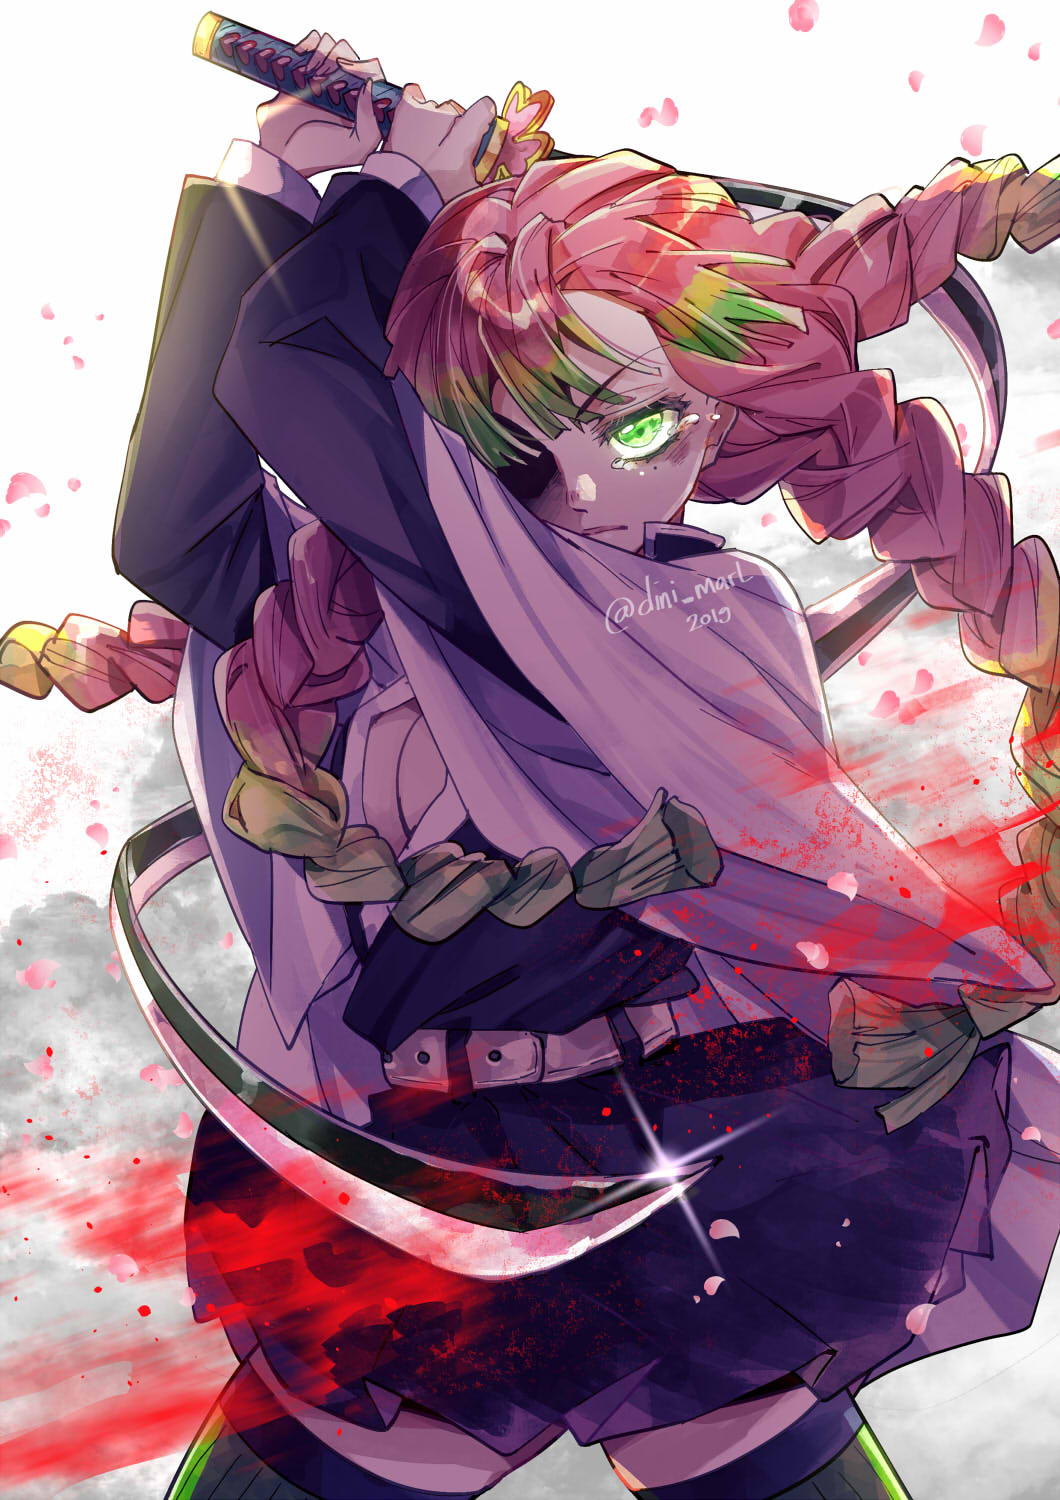 1girl blood braid cowboy_shot crying dinimarlina gradient_hair green_eyes highres holding holding_sword holding_weapon kanroji_matsuri kimetsu_no_yaiba looking_at_viewer multicolored_hair multiple_braids petals pink_hair pleated_skirt skirt solo sword tears thigh-highs uniform weapon white_background zettai_ryouiki